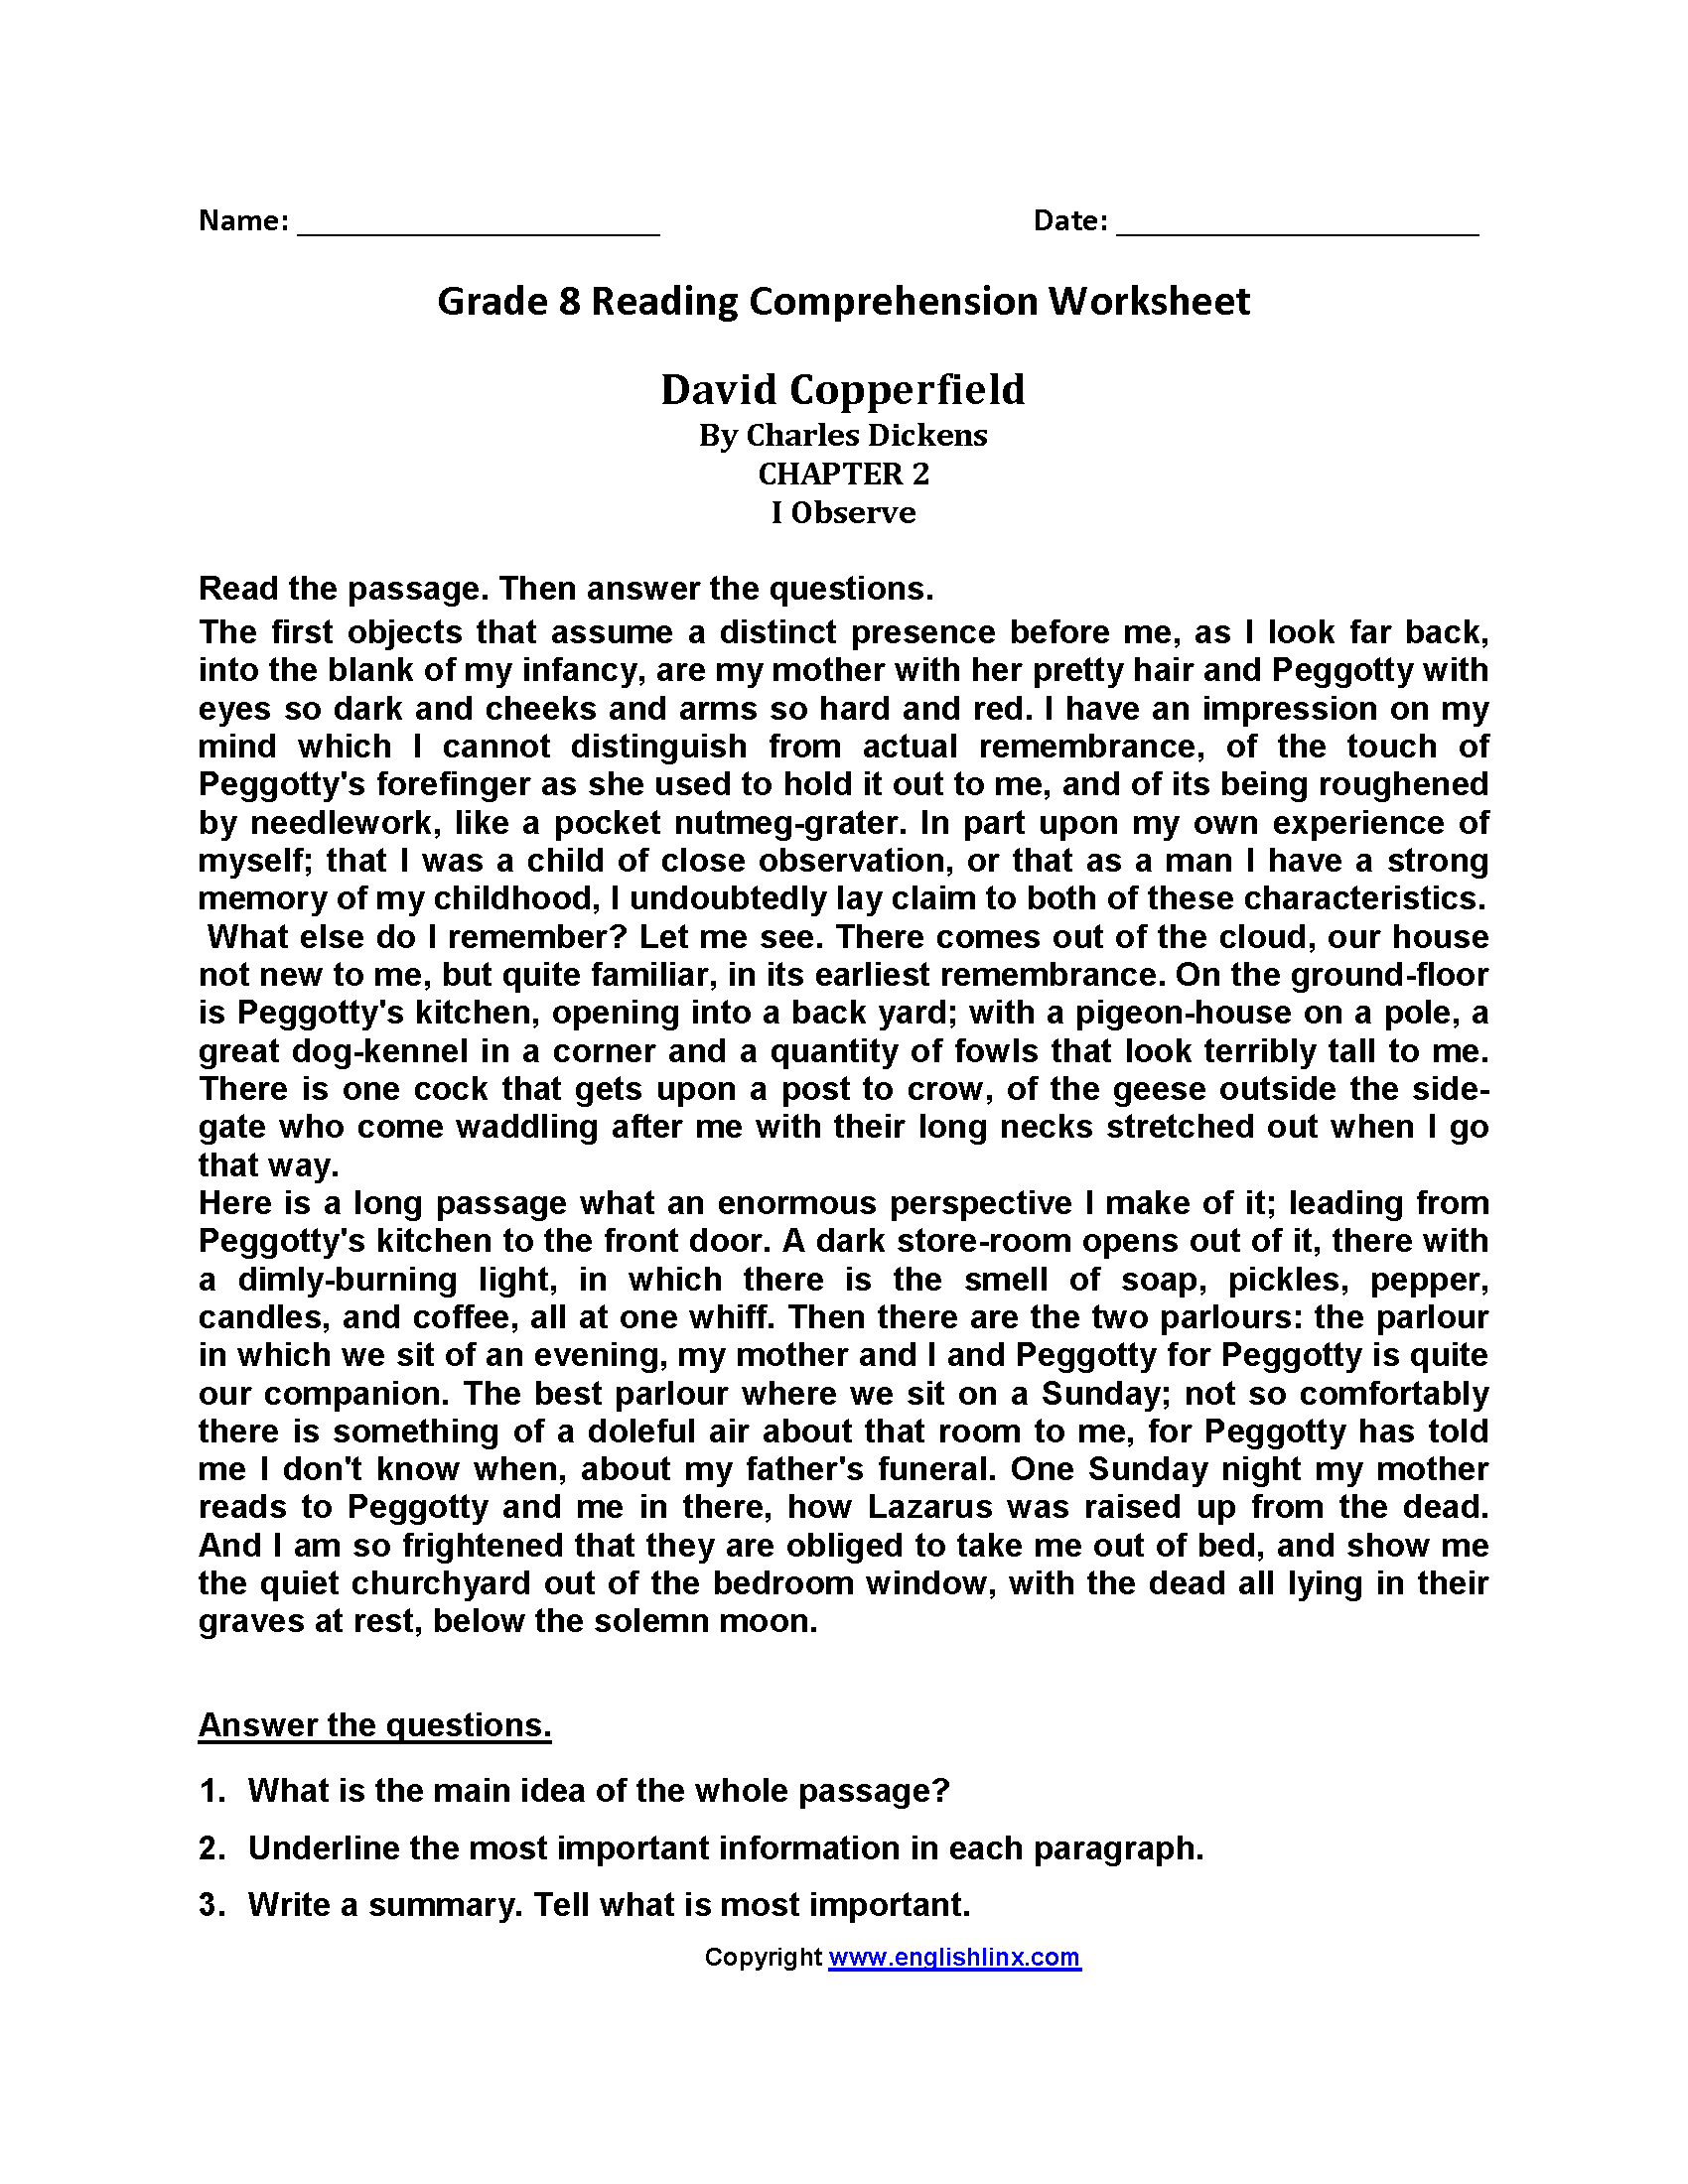 Worksheets 8th Grade Reading Comprehension Worksheets Cheatslist Free Worksheets For Kids